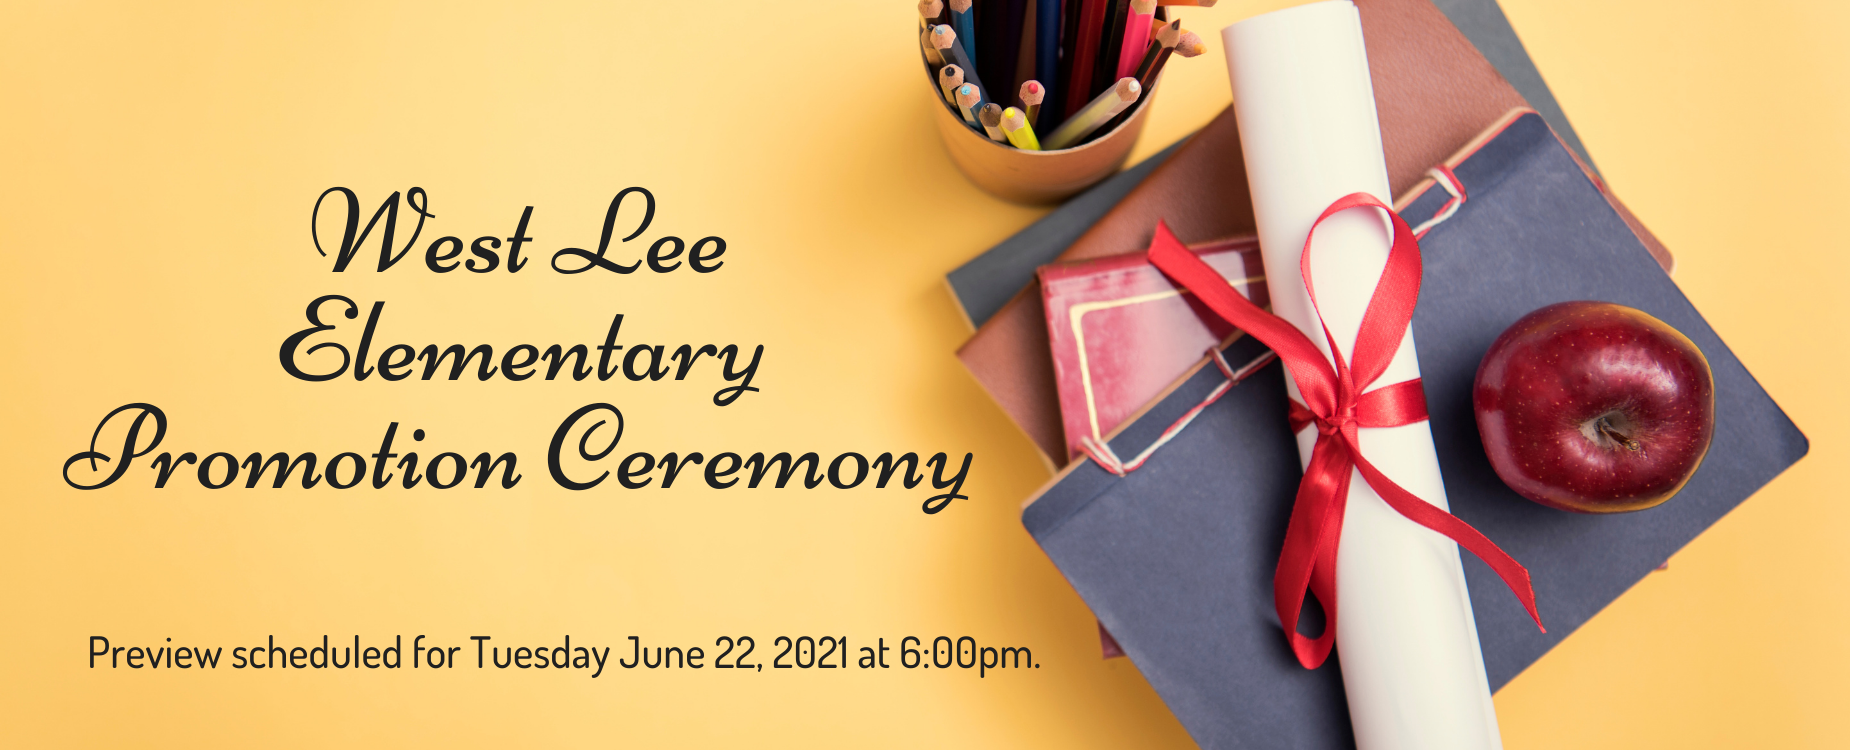 West Lee Elementary Promotion Ceremony